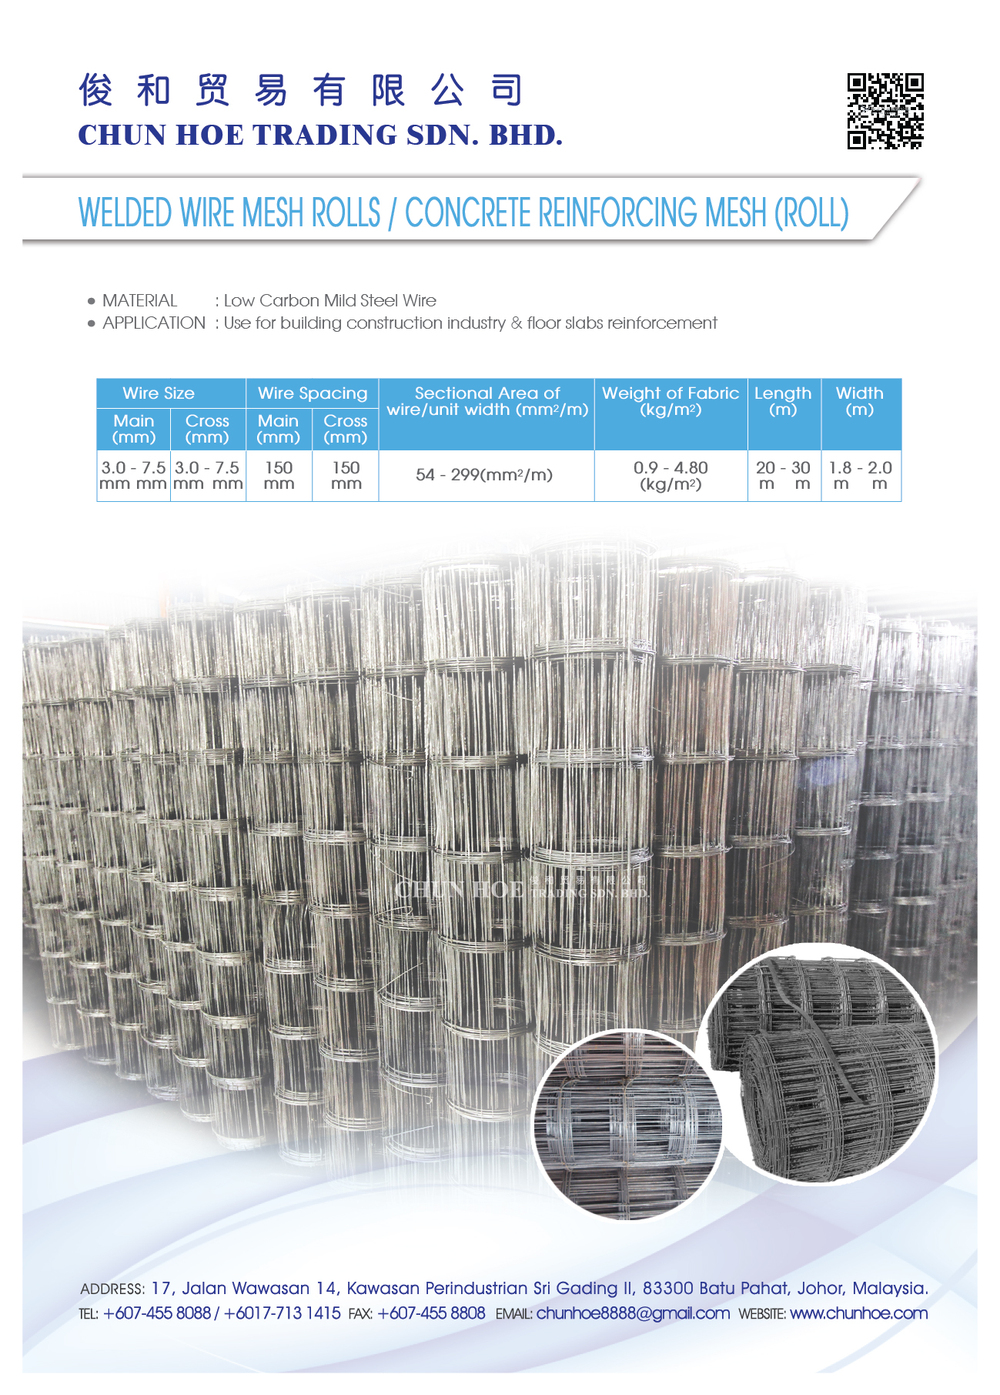 Welded wire mesh sizes english units wire center welded wire mesh rolls concrete reinforcing mesh roll buy rh alibaba com wire mesh size chart welded wire weight keyboard keysfo Gallery